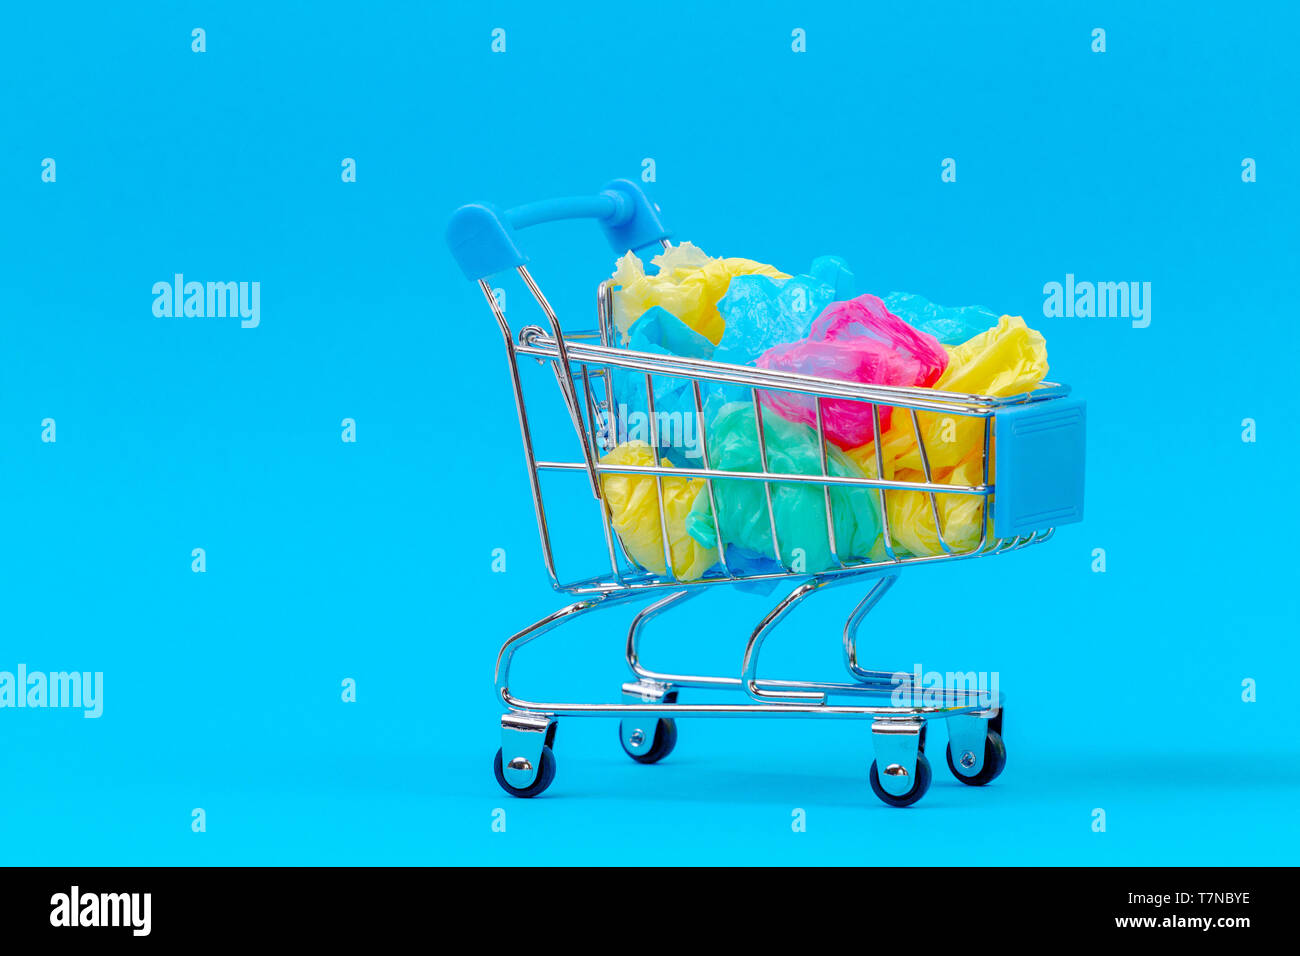 Mini shopping trolley full of colorful single use plastic bags on blue background - Stock Image